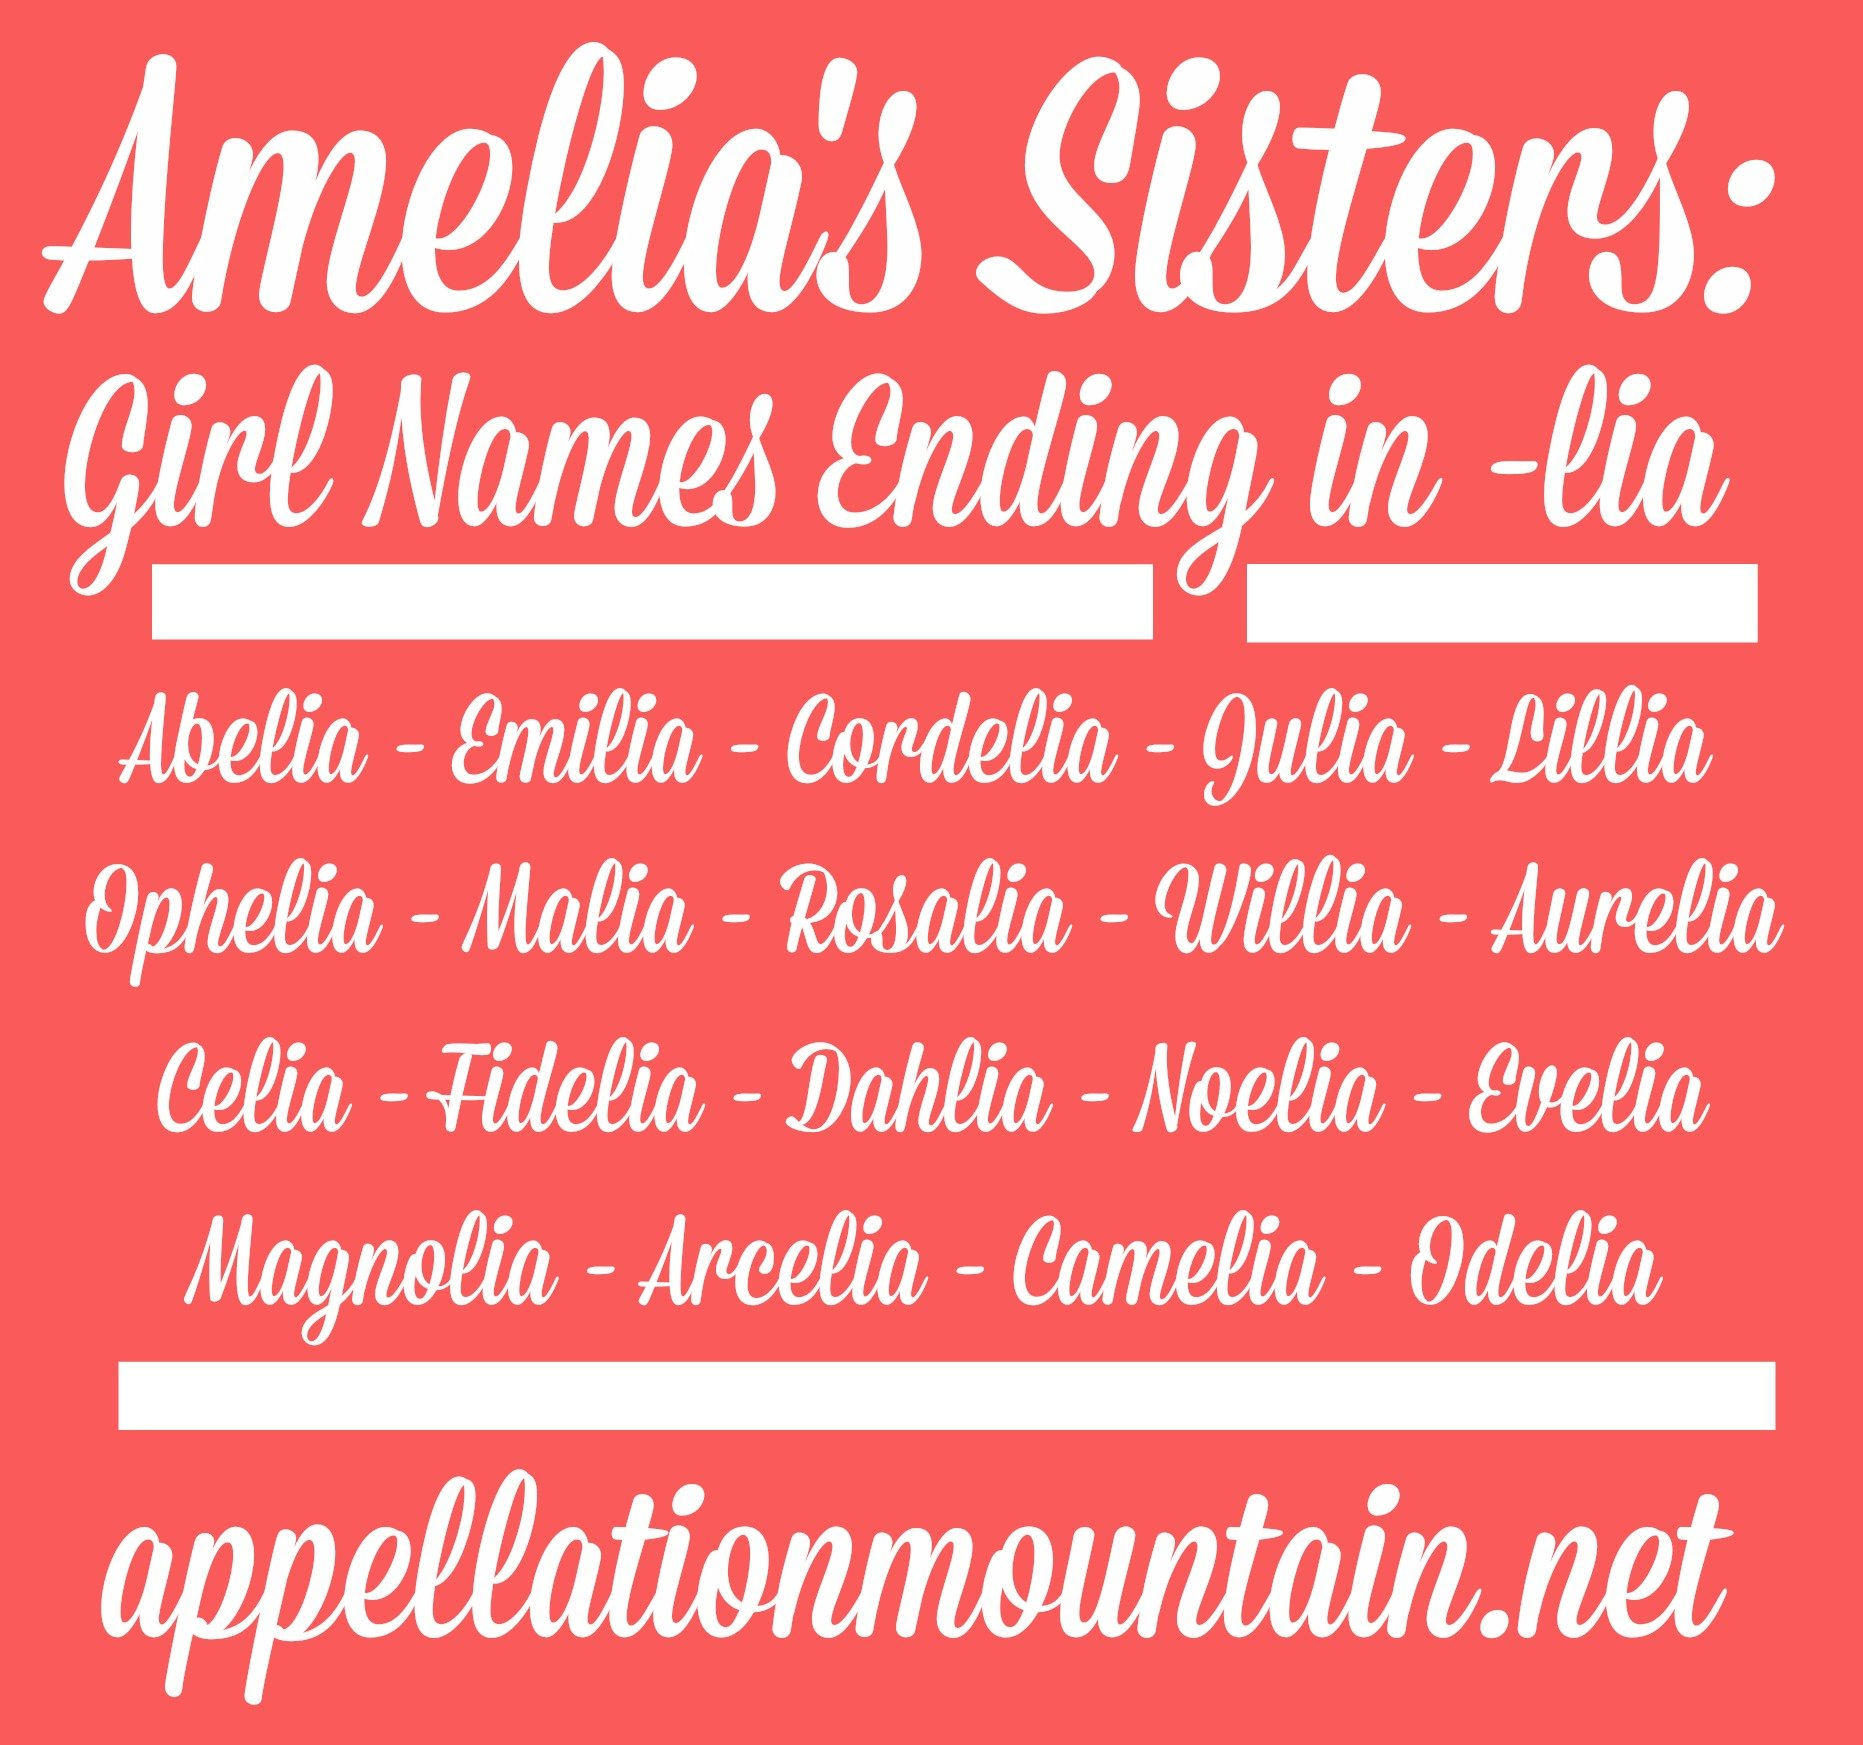 amelia s sisters girl names ending in lia appellation mountain